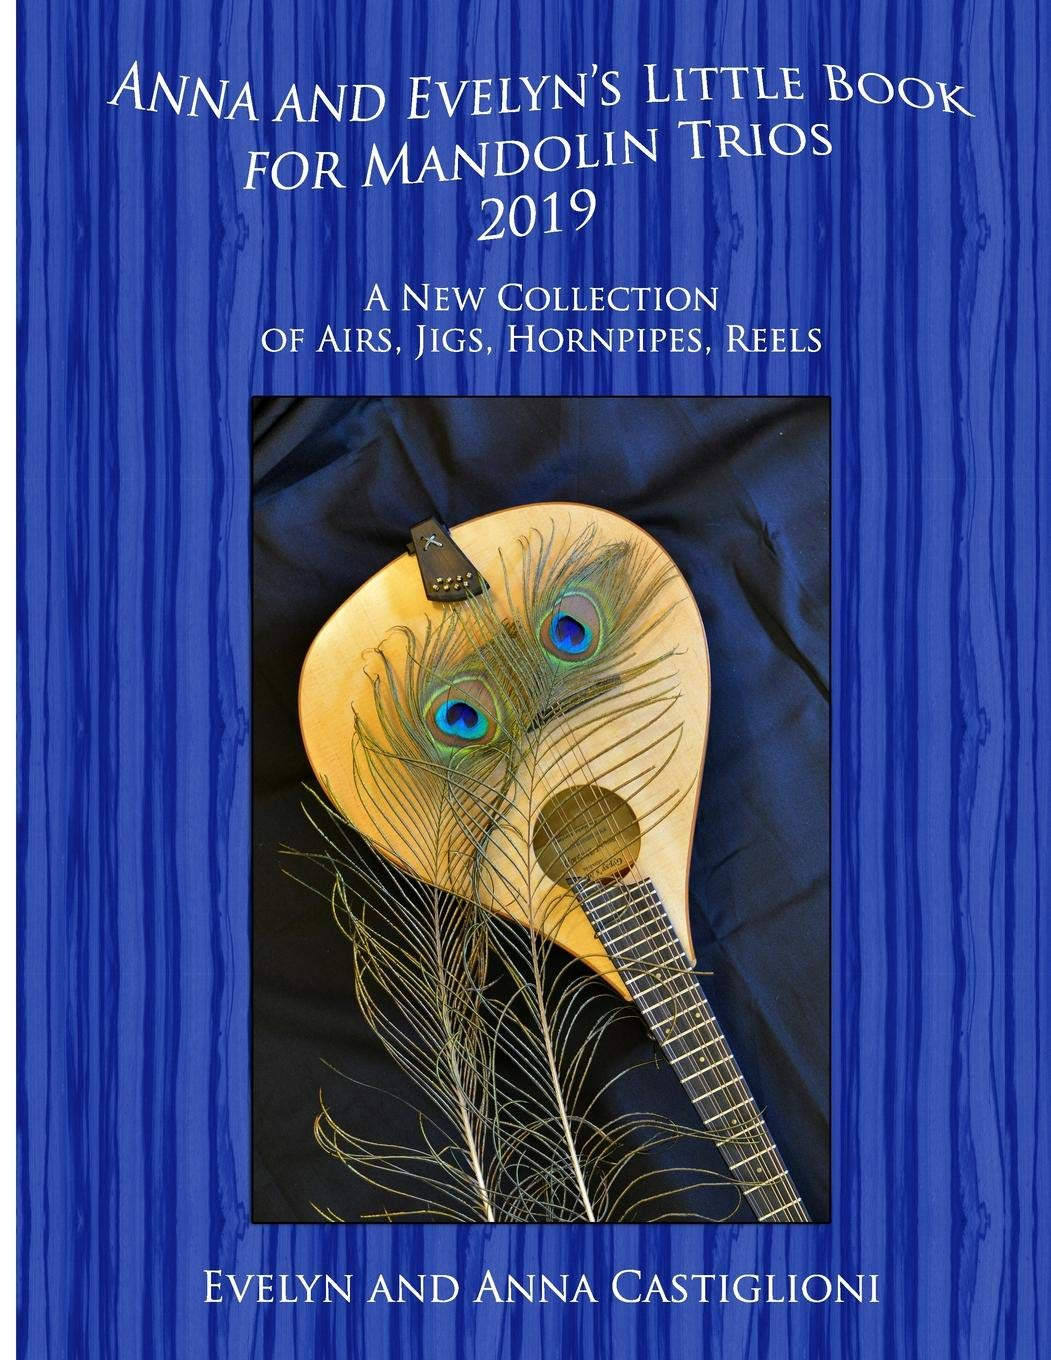 Amazon com: Anna's and Evelyn's Little Book for Mandolin Trios 2019